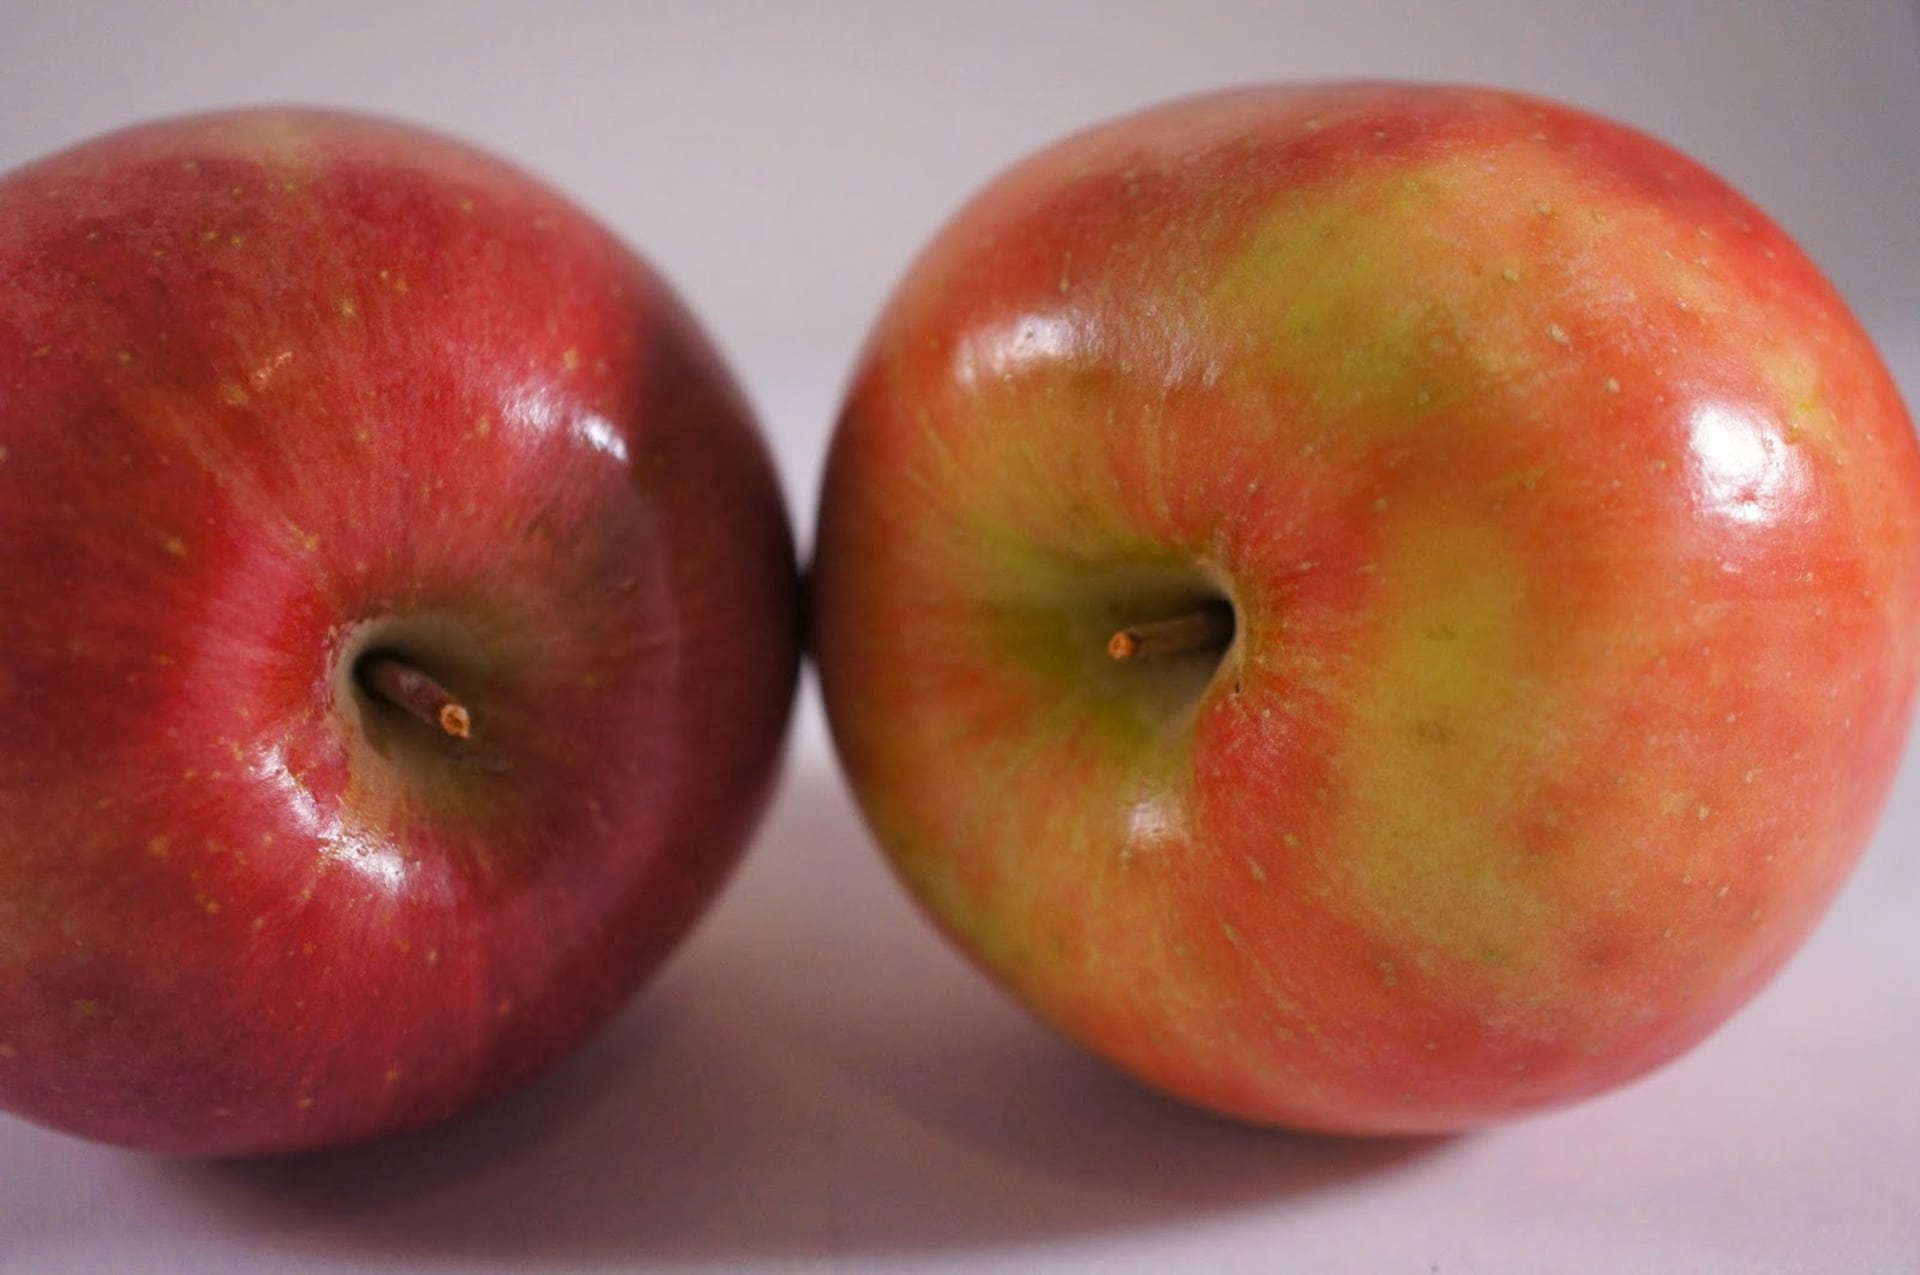 Red Apple Delicious apple rich in vitamins and